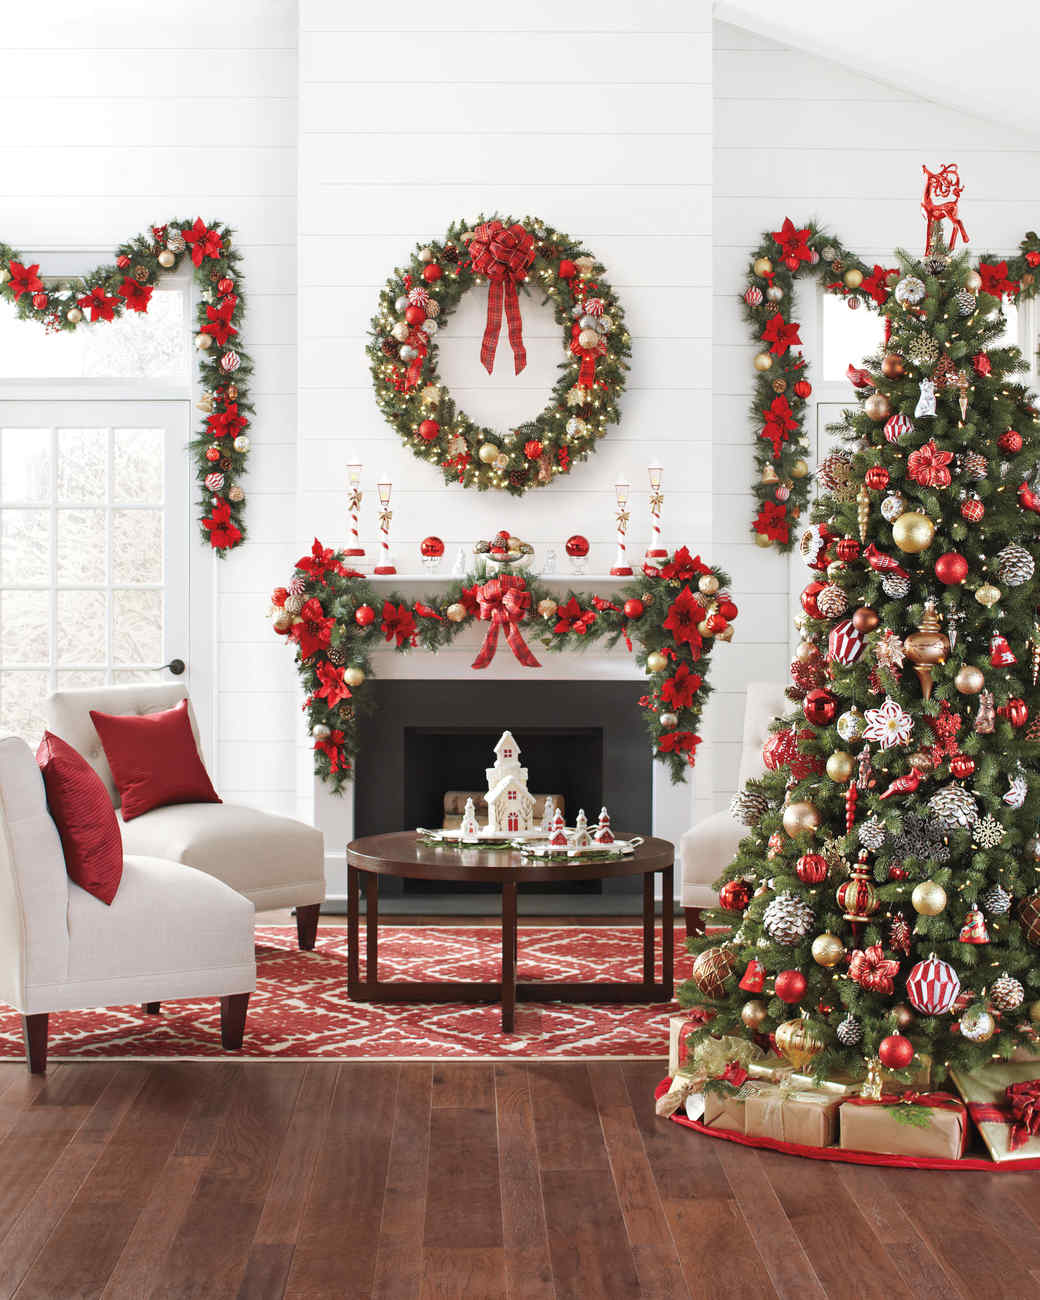 Martha stewart christmas decorating diepedia